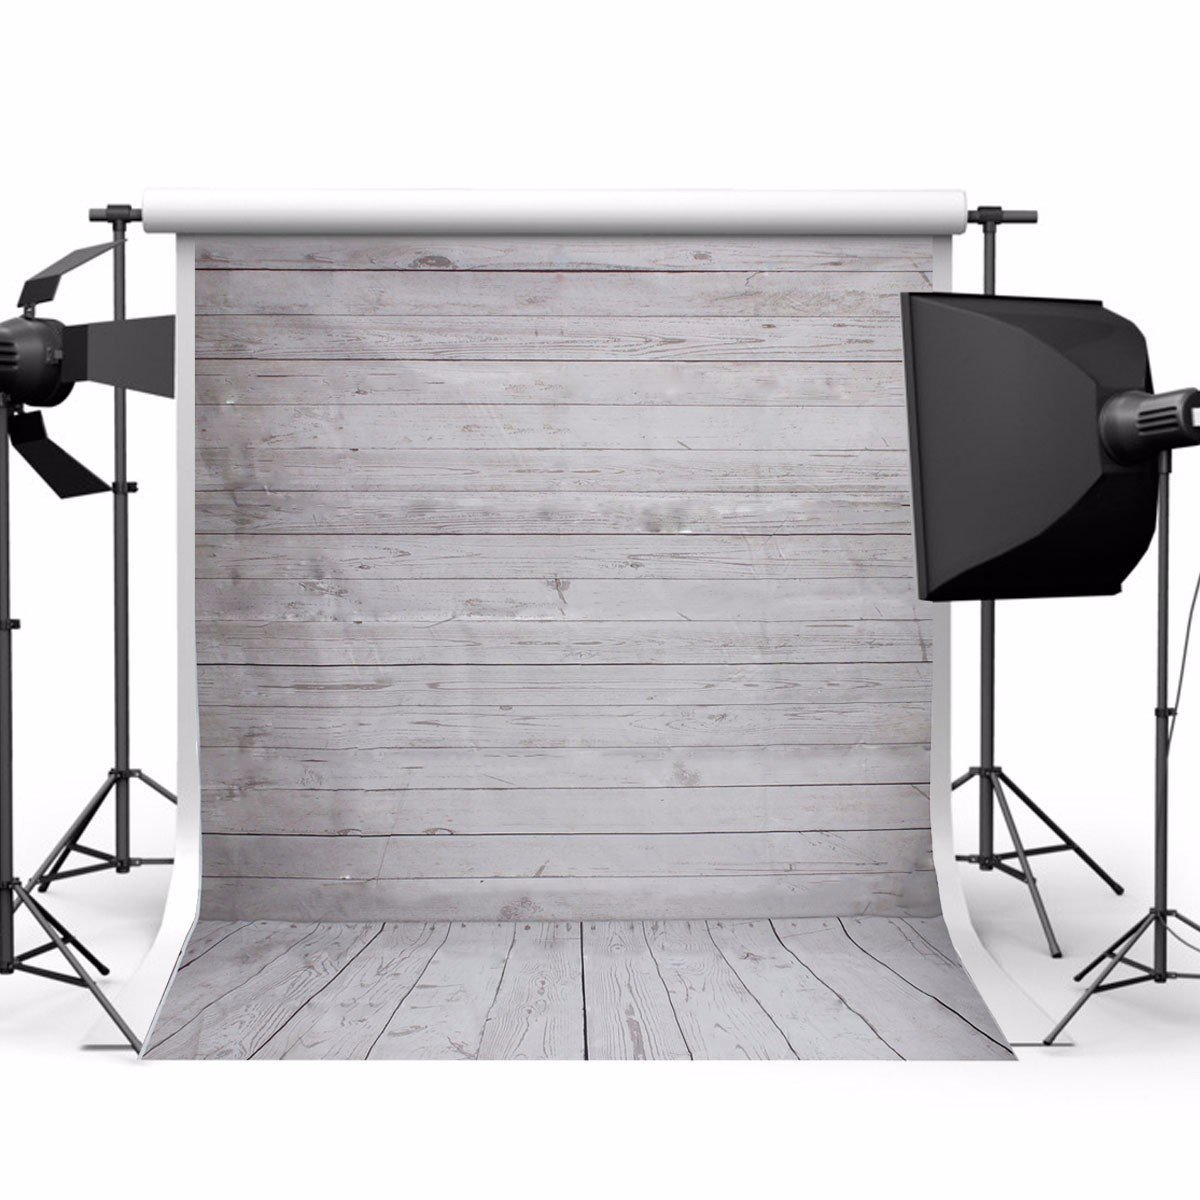 5x7ft Wood Wall Floor Studio Prop Photography Vinyl Background Photo Backdrop Best Price retro letter paper background baby photo studio props photography backdrops vinyl 5x7ft or 3x5ft wooden floor